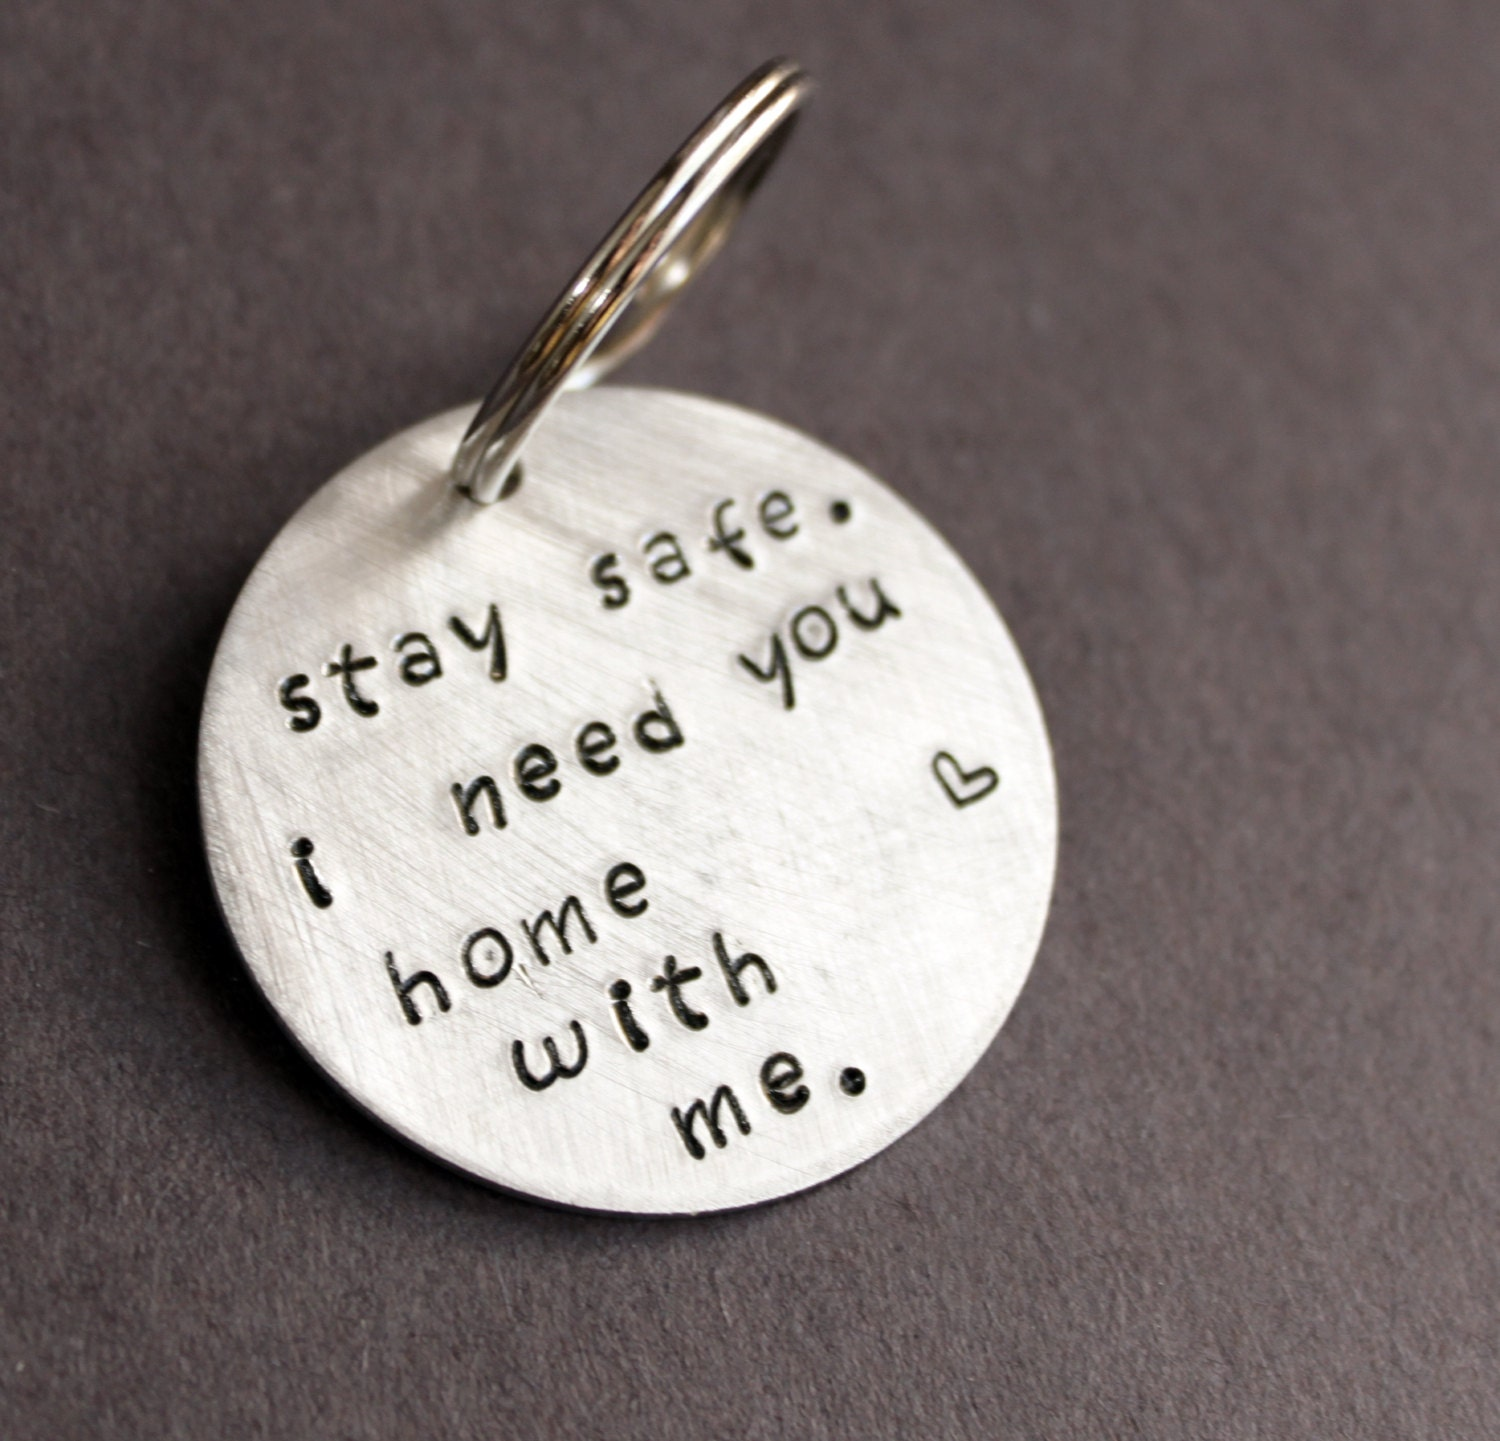 Stay Safe Keychain I Need You Home With Me Police Officer Gift Birthday Gifts For Boyfriend